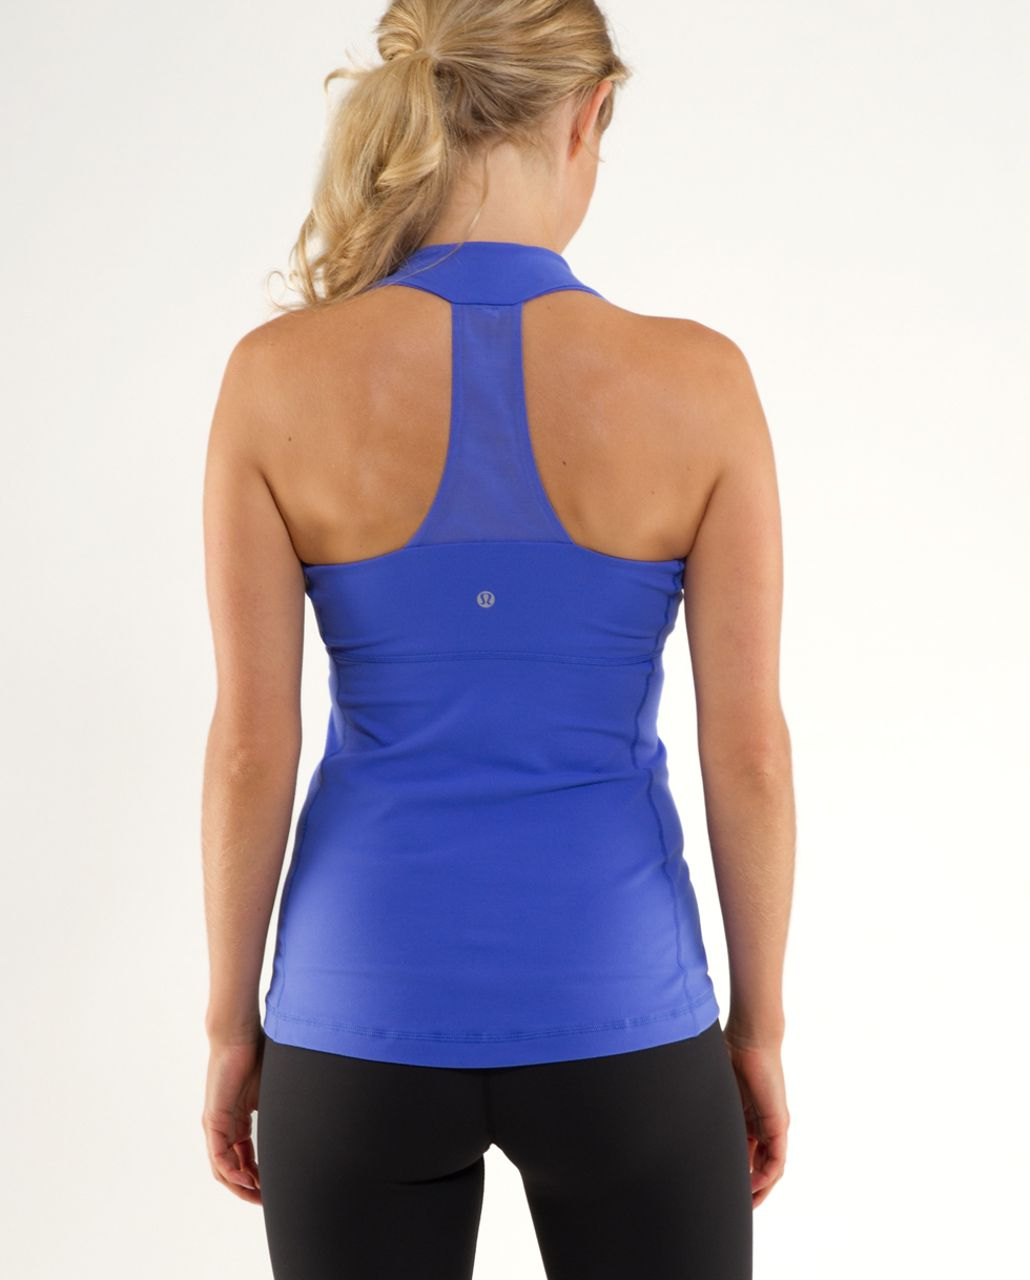 Lululemon Scoop Neck Tank - Rocksteady